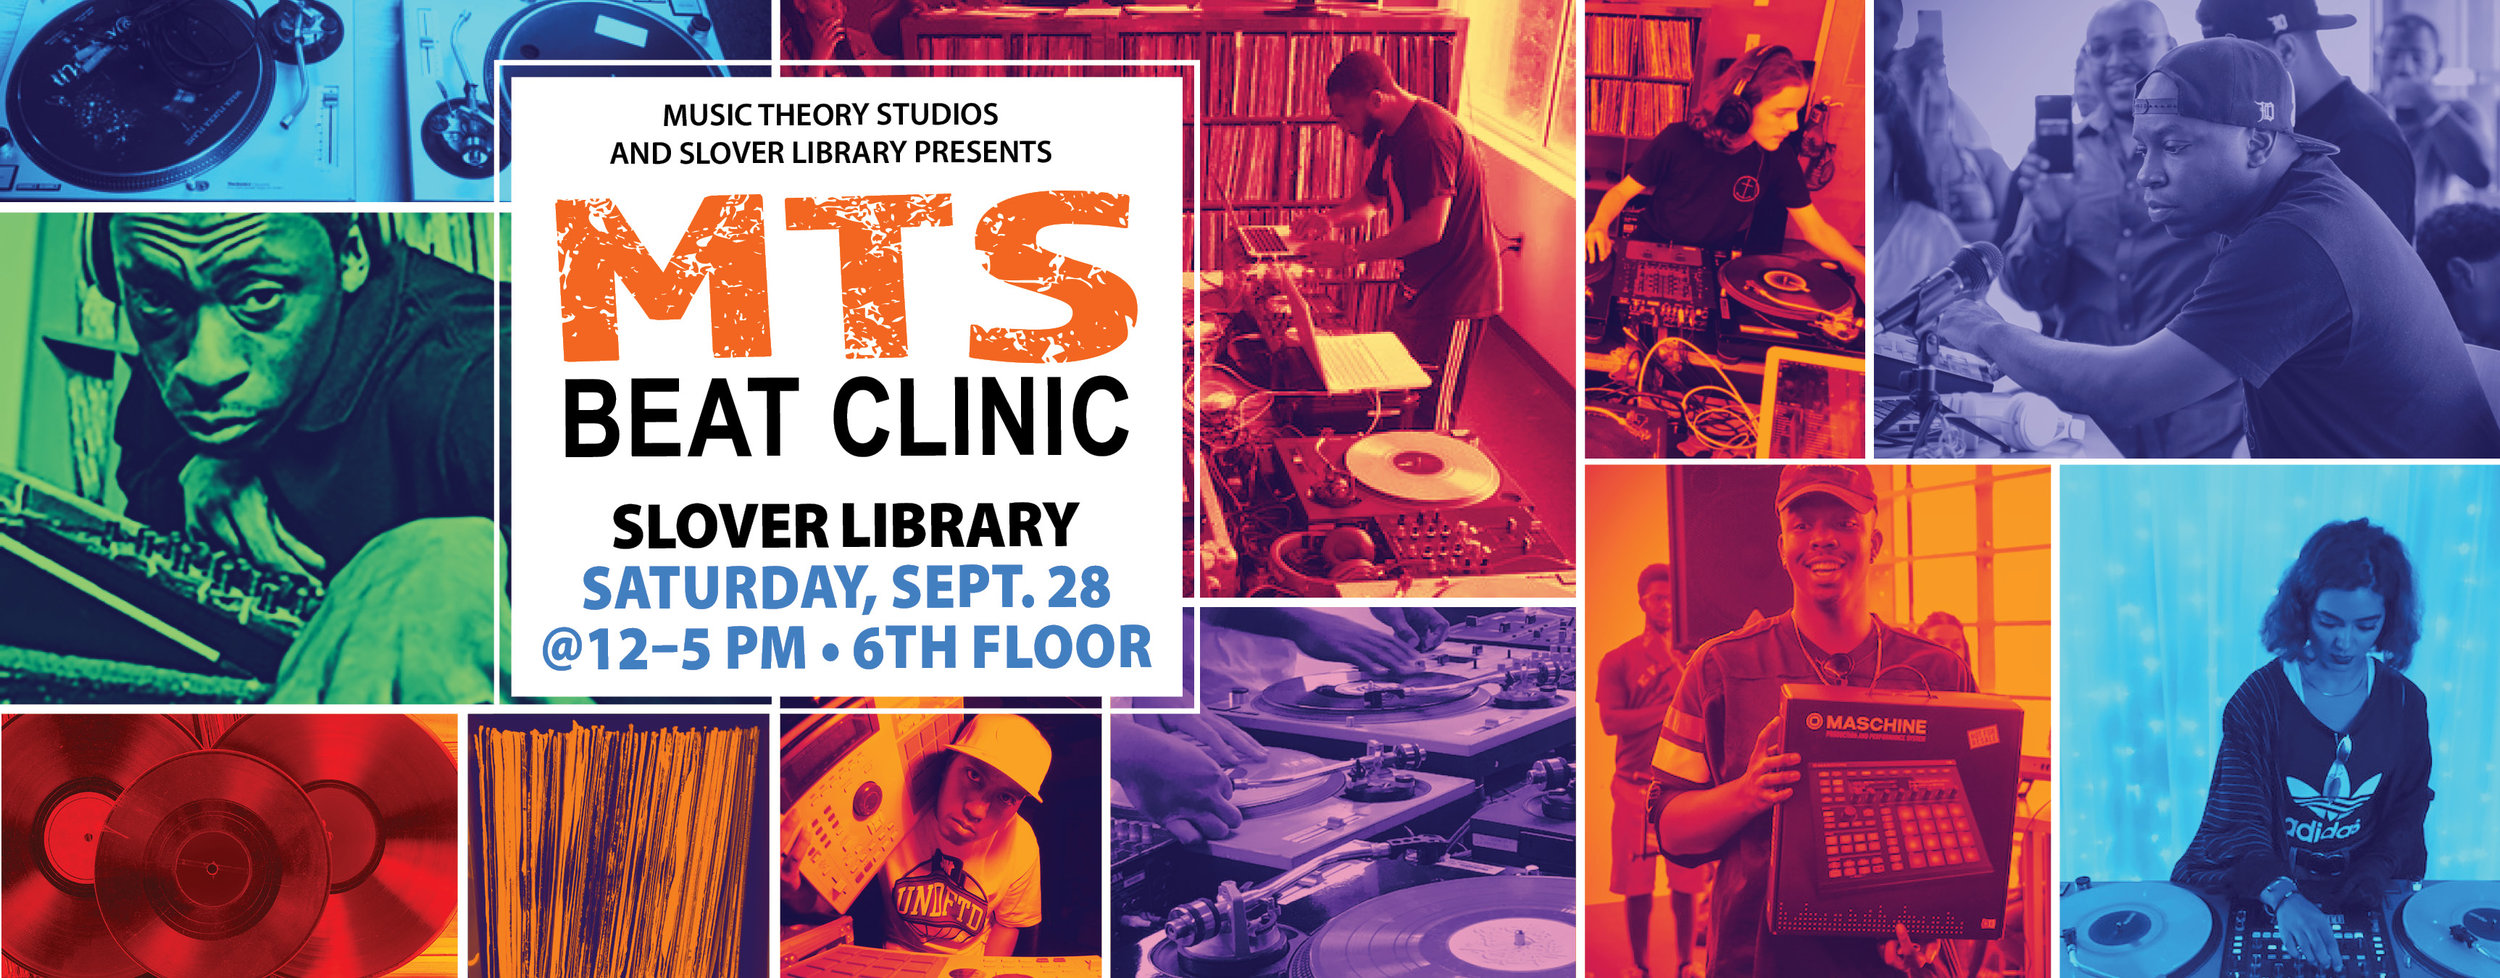 Beat Clinic Banner for MTS.jpg